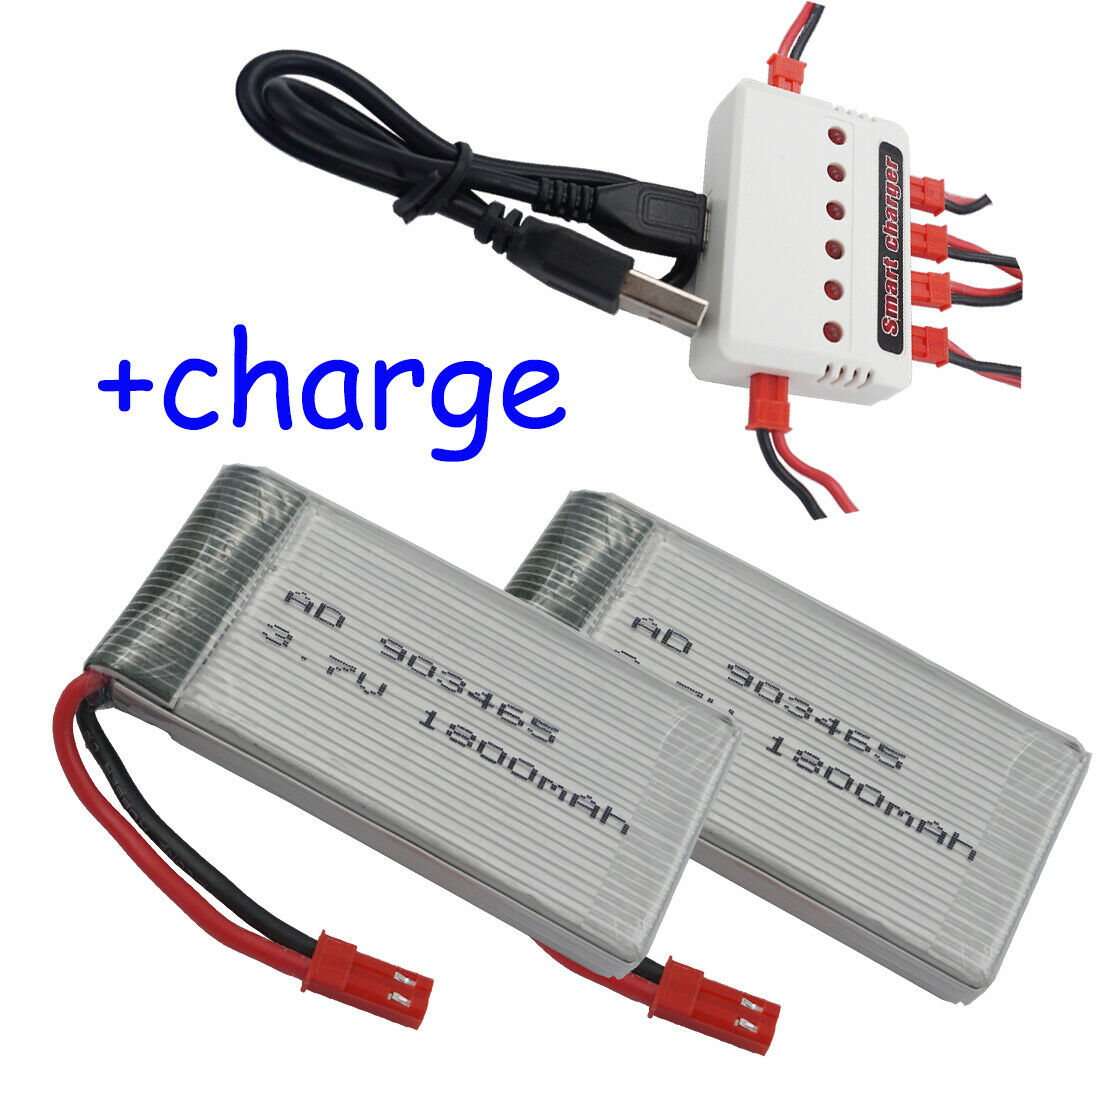 3.7V 1800 mAh 25C Polymer Li battery 903465 for YX693-1 YX709-1 Toys Helicopters